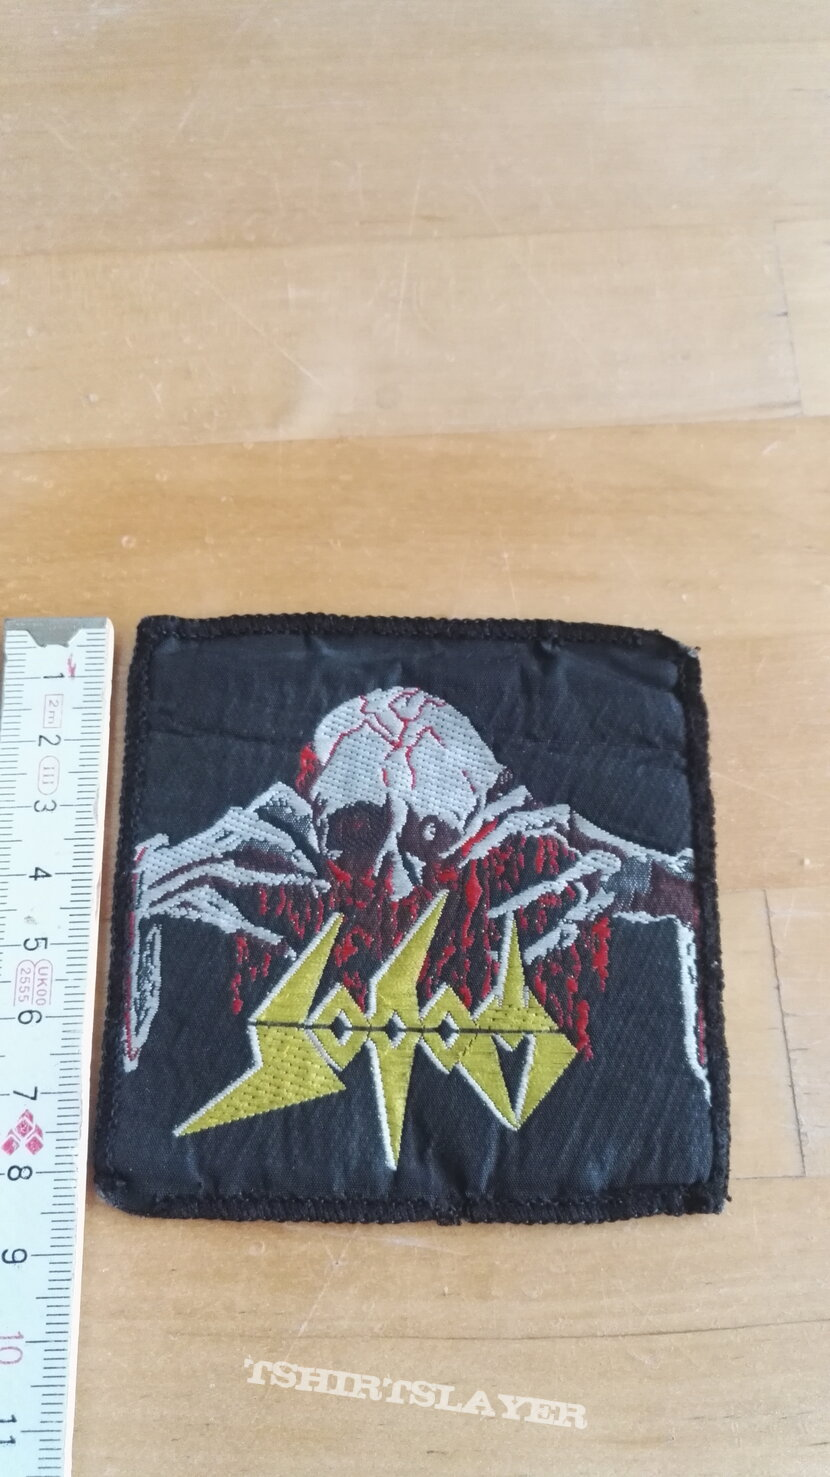 Sodom: Obsessed By Cruelty Patch, 90s, used